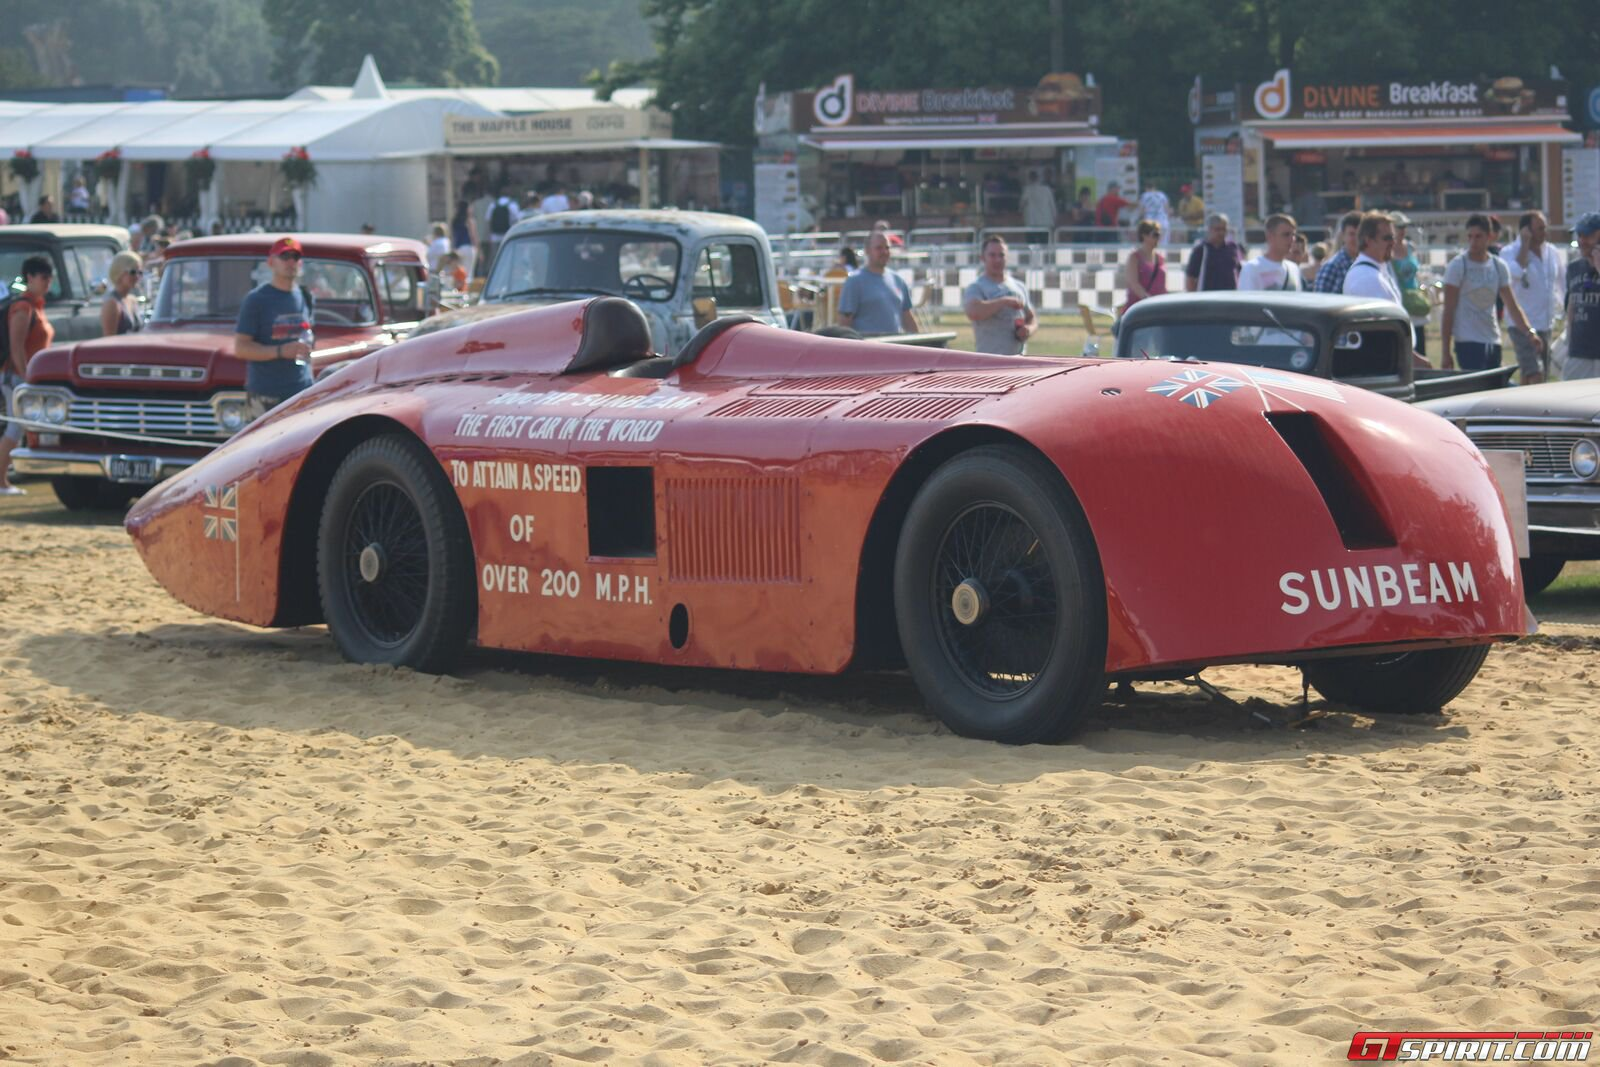 land speed record The current land speed record broke the speed of sound, going more than 1,000kph now, the holders andy green, and richard noble, who has been leading the way in lsr attempts since the early 80s.